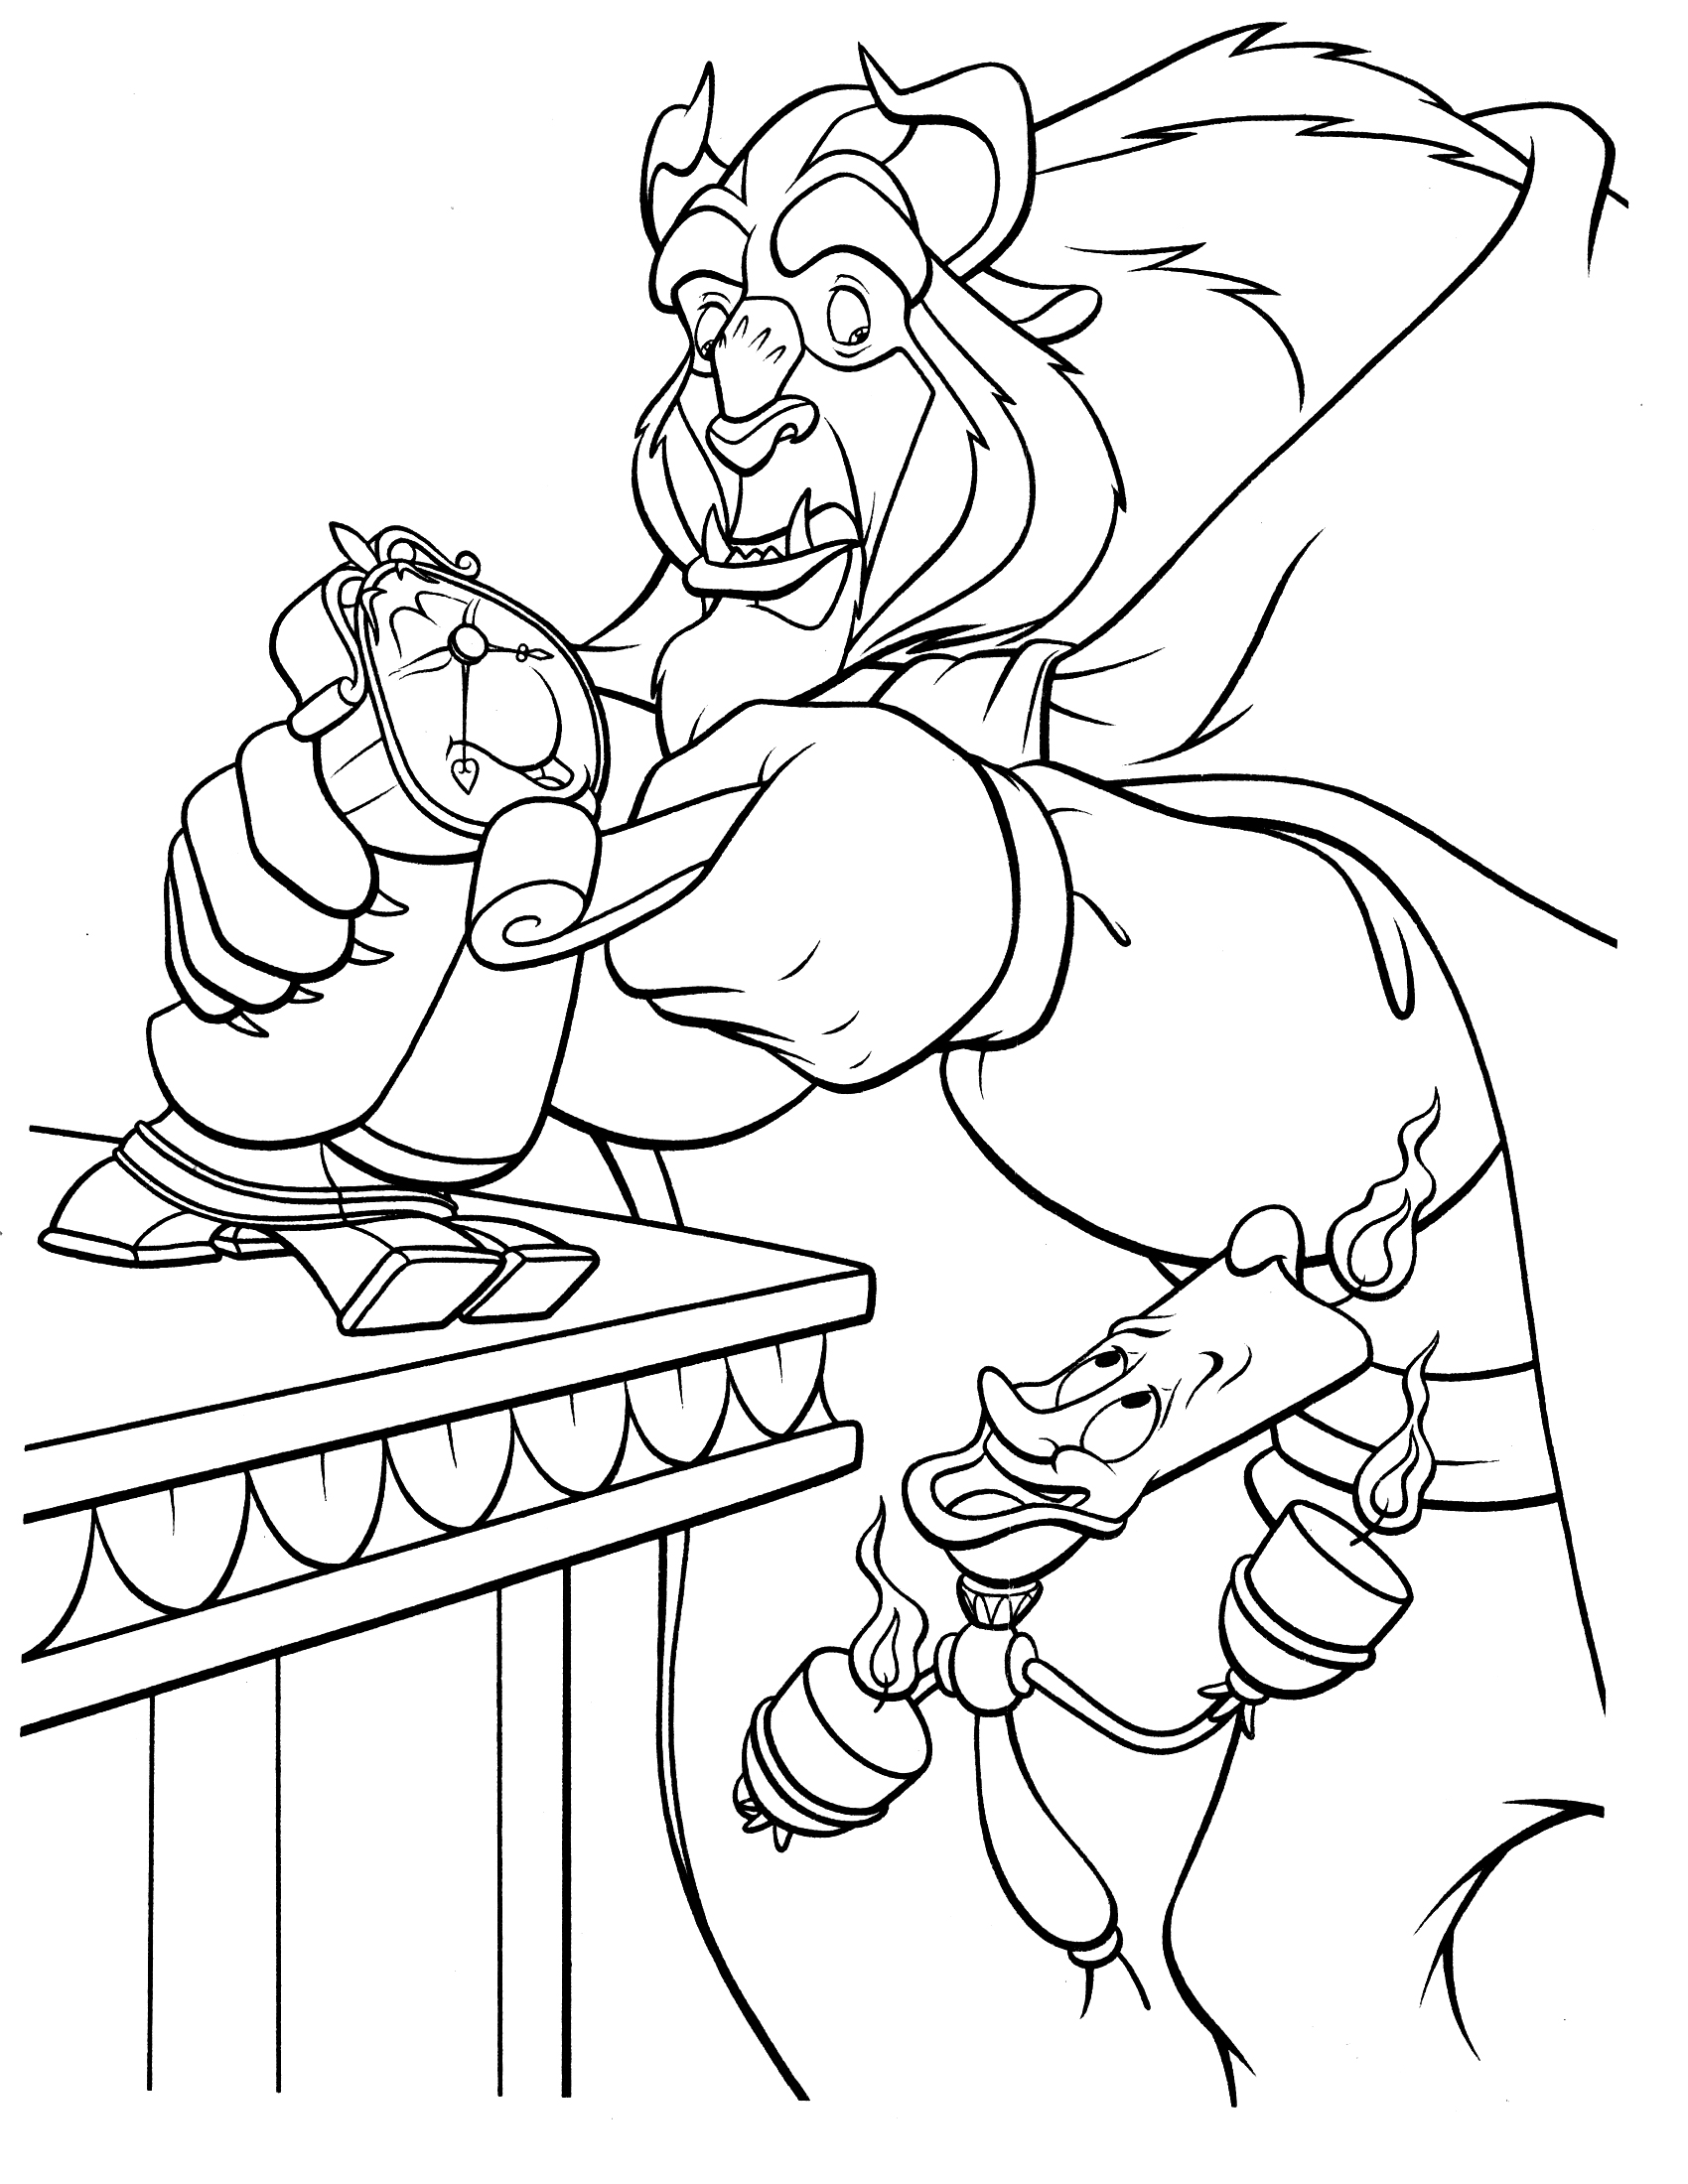 beauty and the beast colouring pages free easy to print beauty and the beast coloring pages pages and colouring beast beauty the